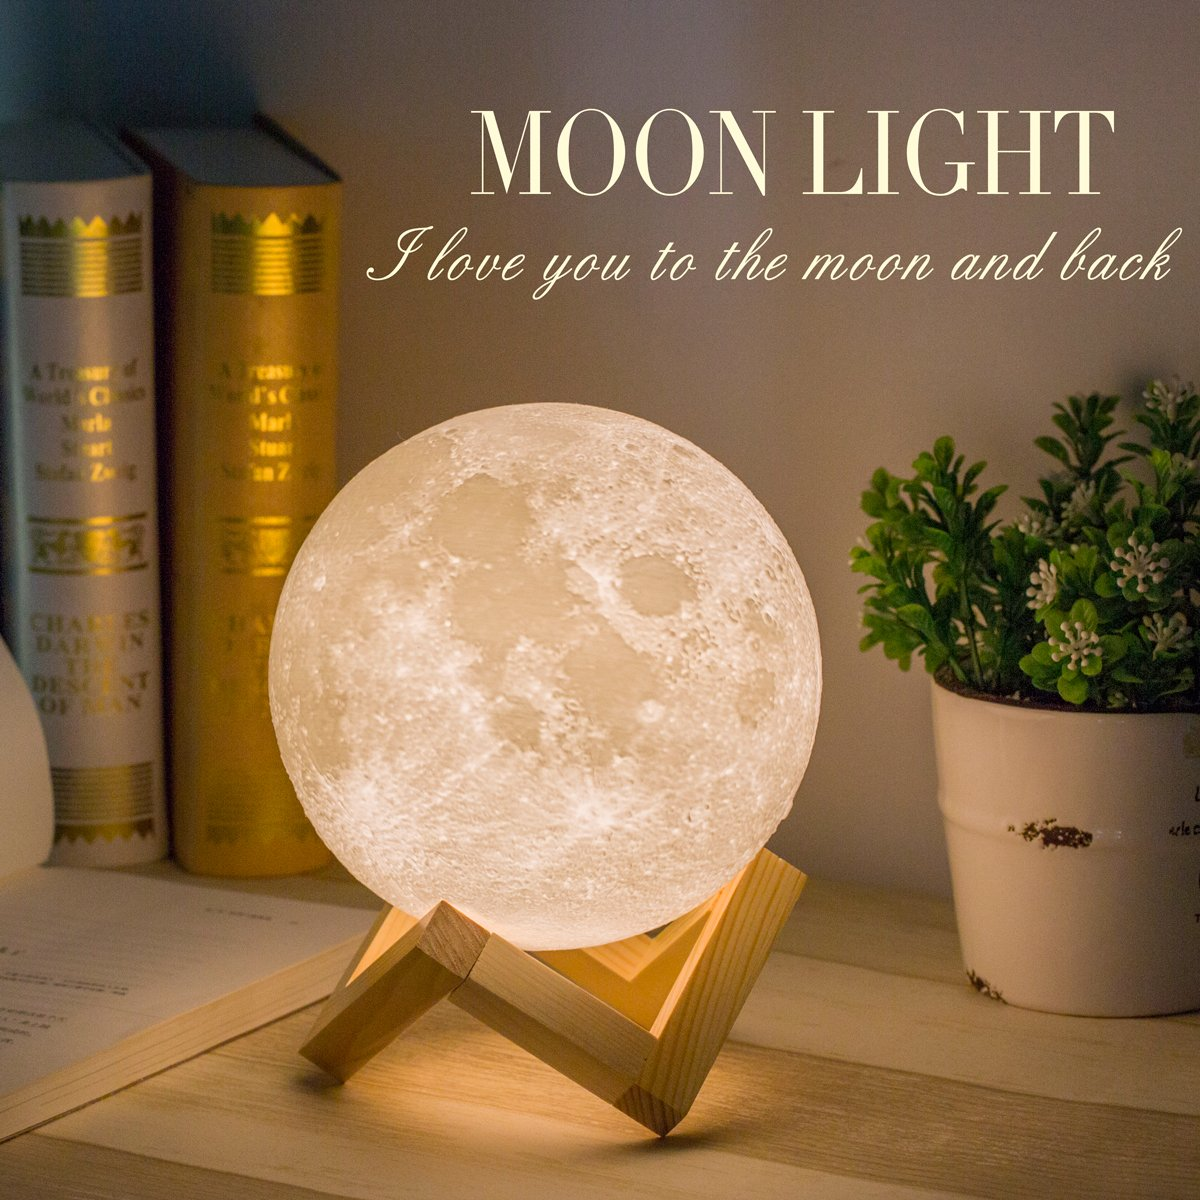 Brightness Women Control White Printed Methun and Night for Moon Kids Lunar Touch Warm Lamp Cool USB Charging Gift 3D Desk Light and for Moon Light oeQdxEWBrC